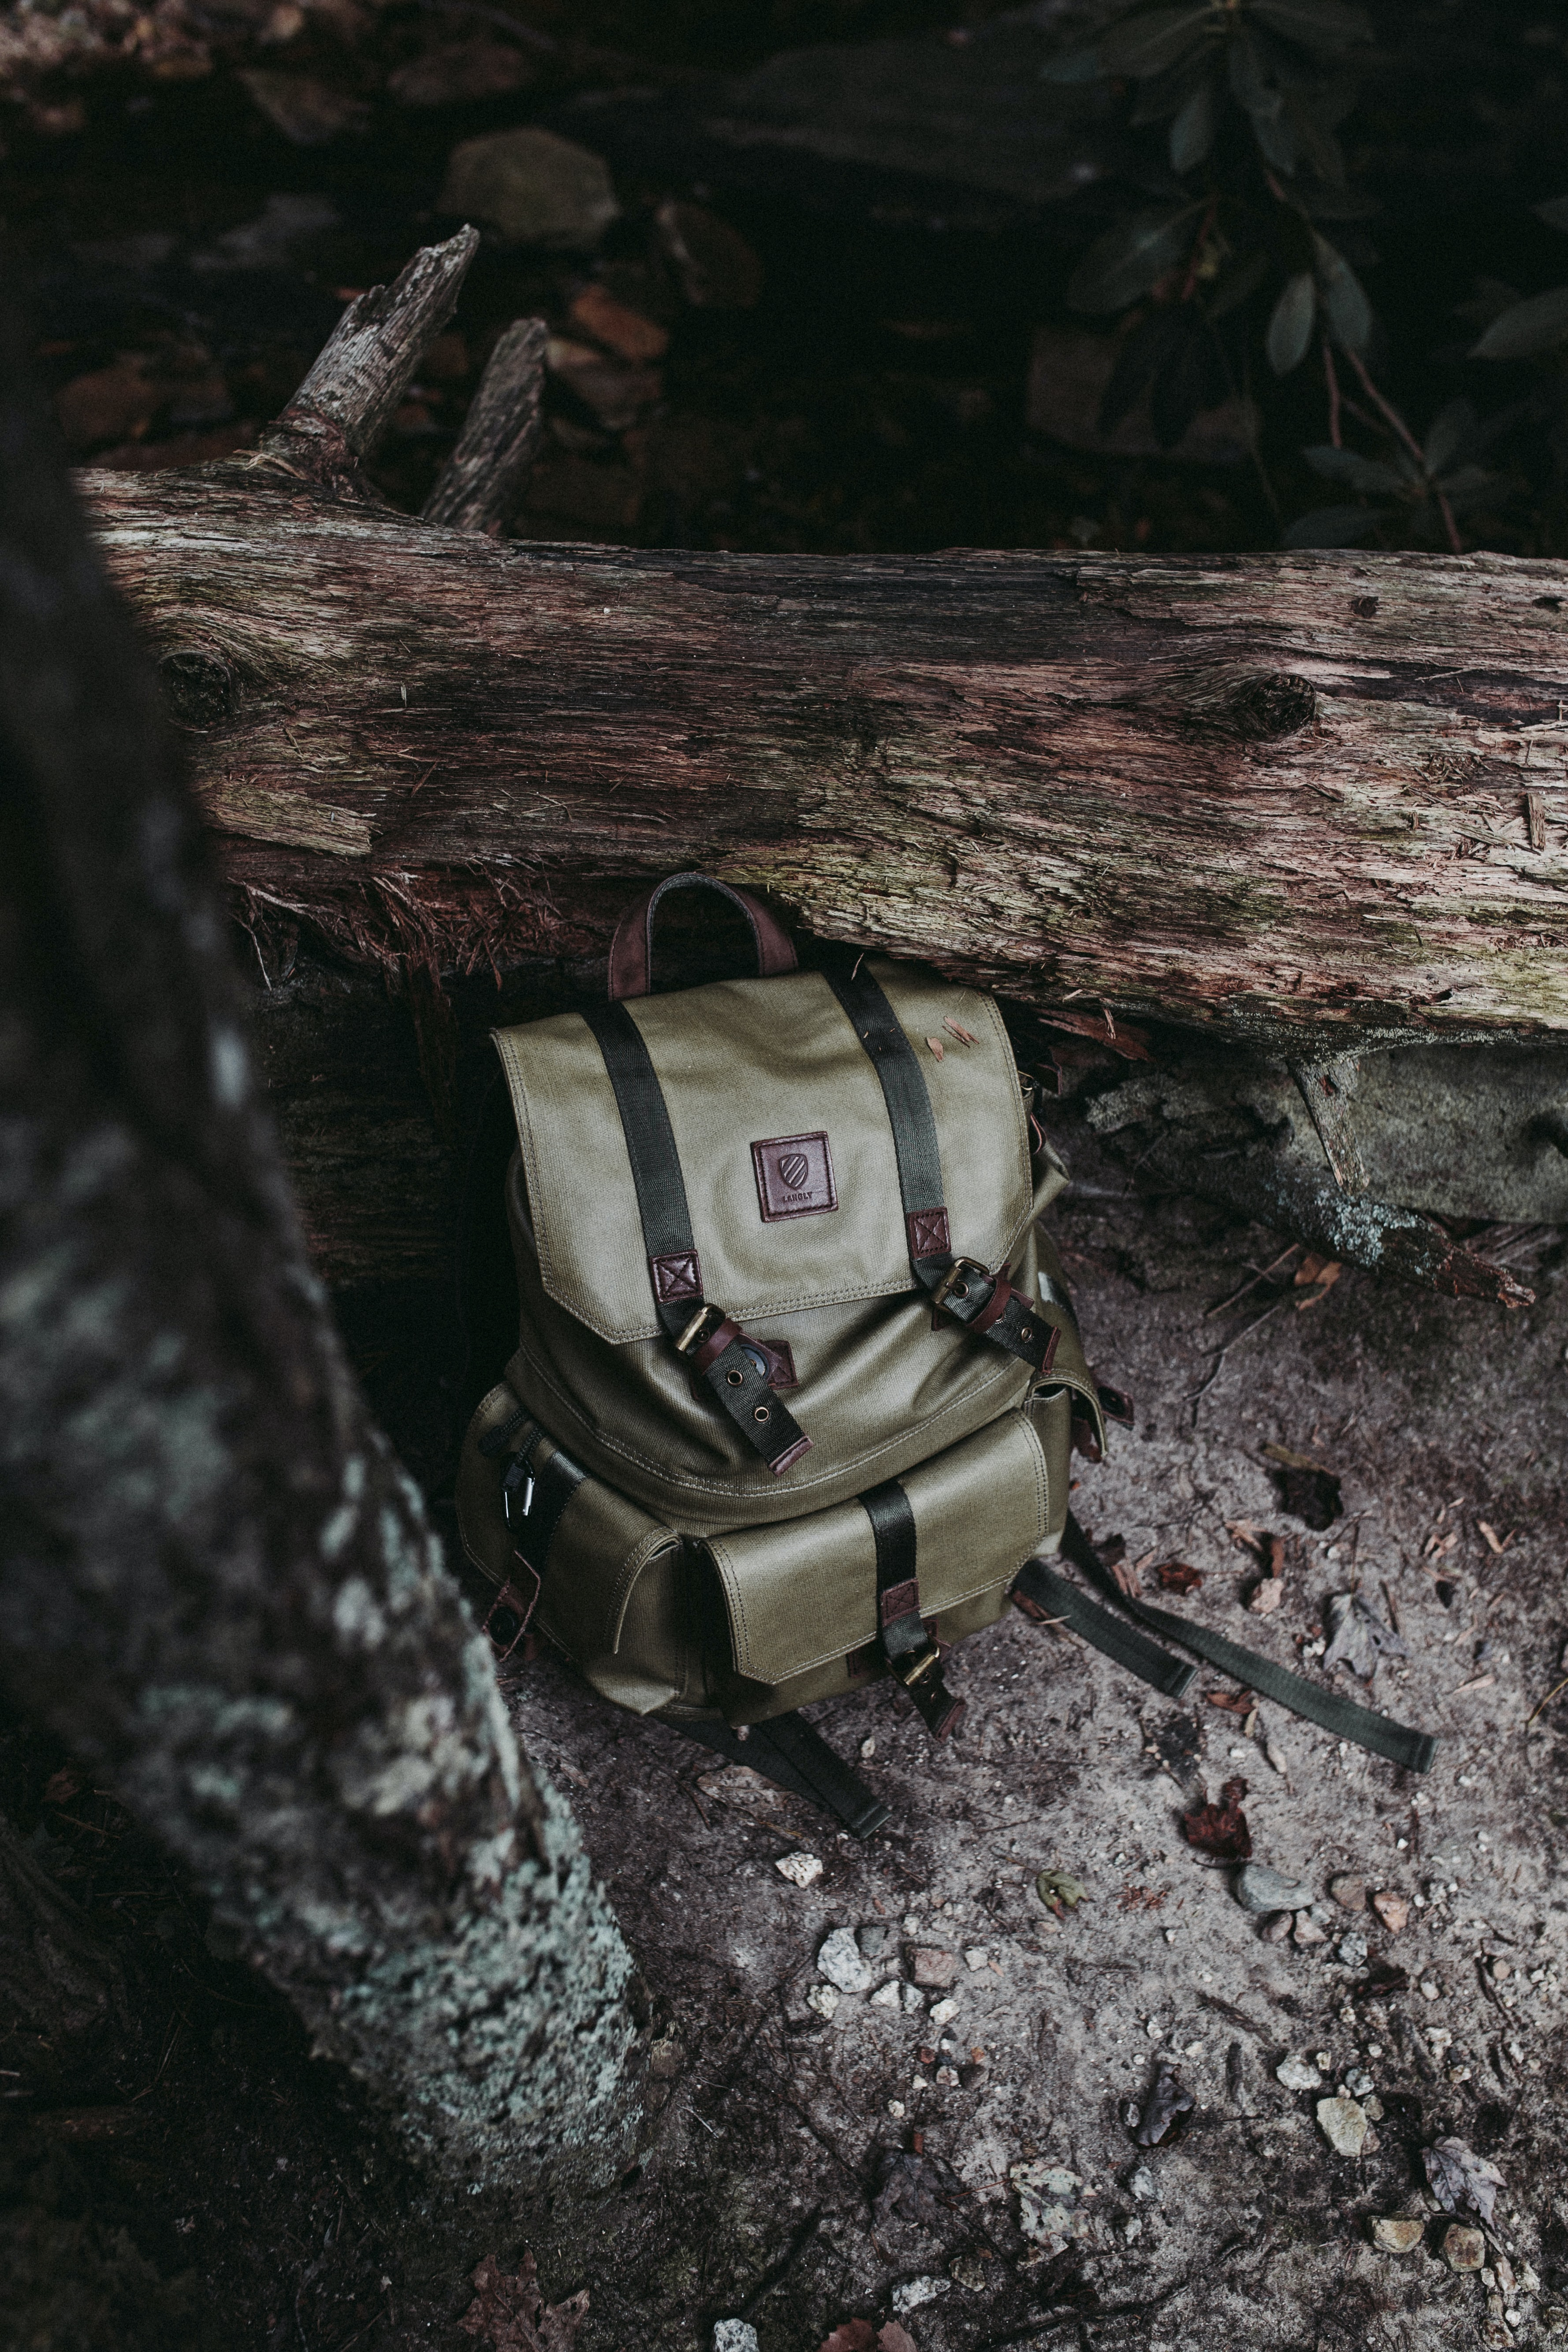 Living Life out of One Bag (Remote Year)